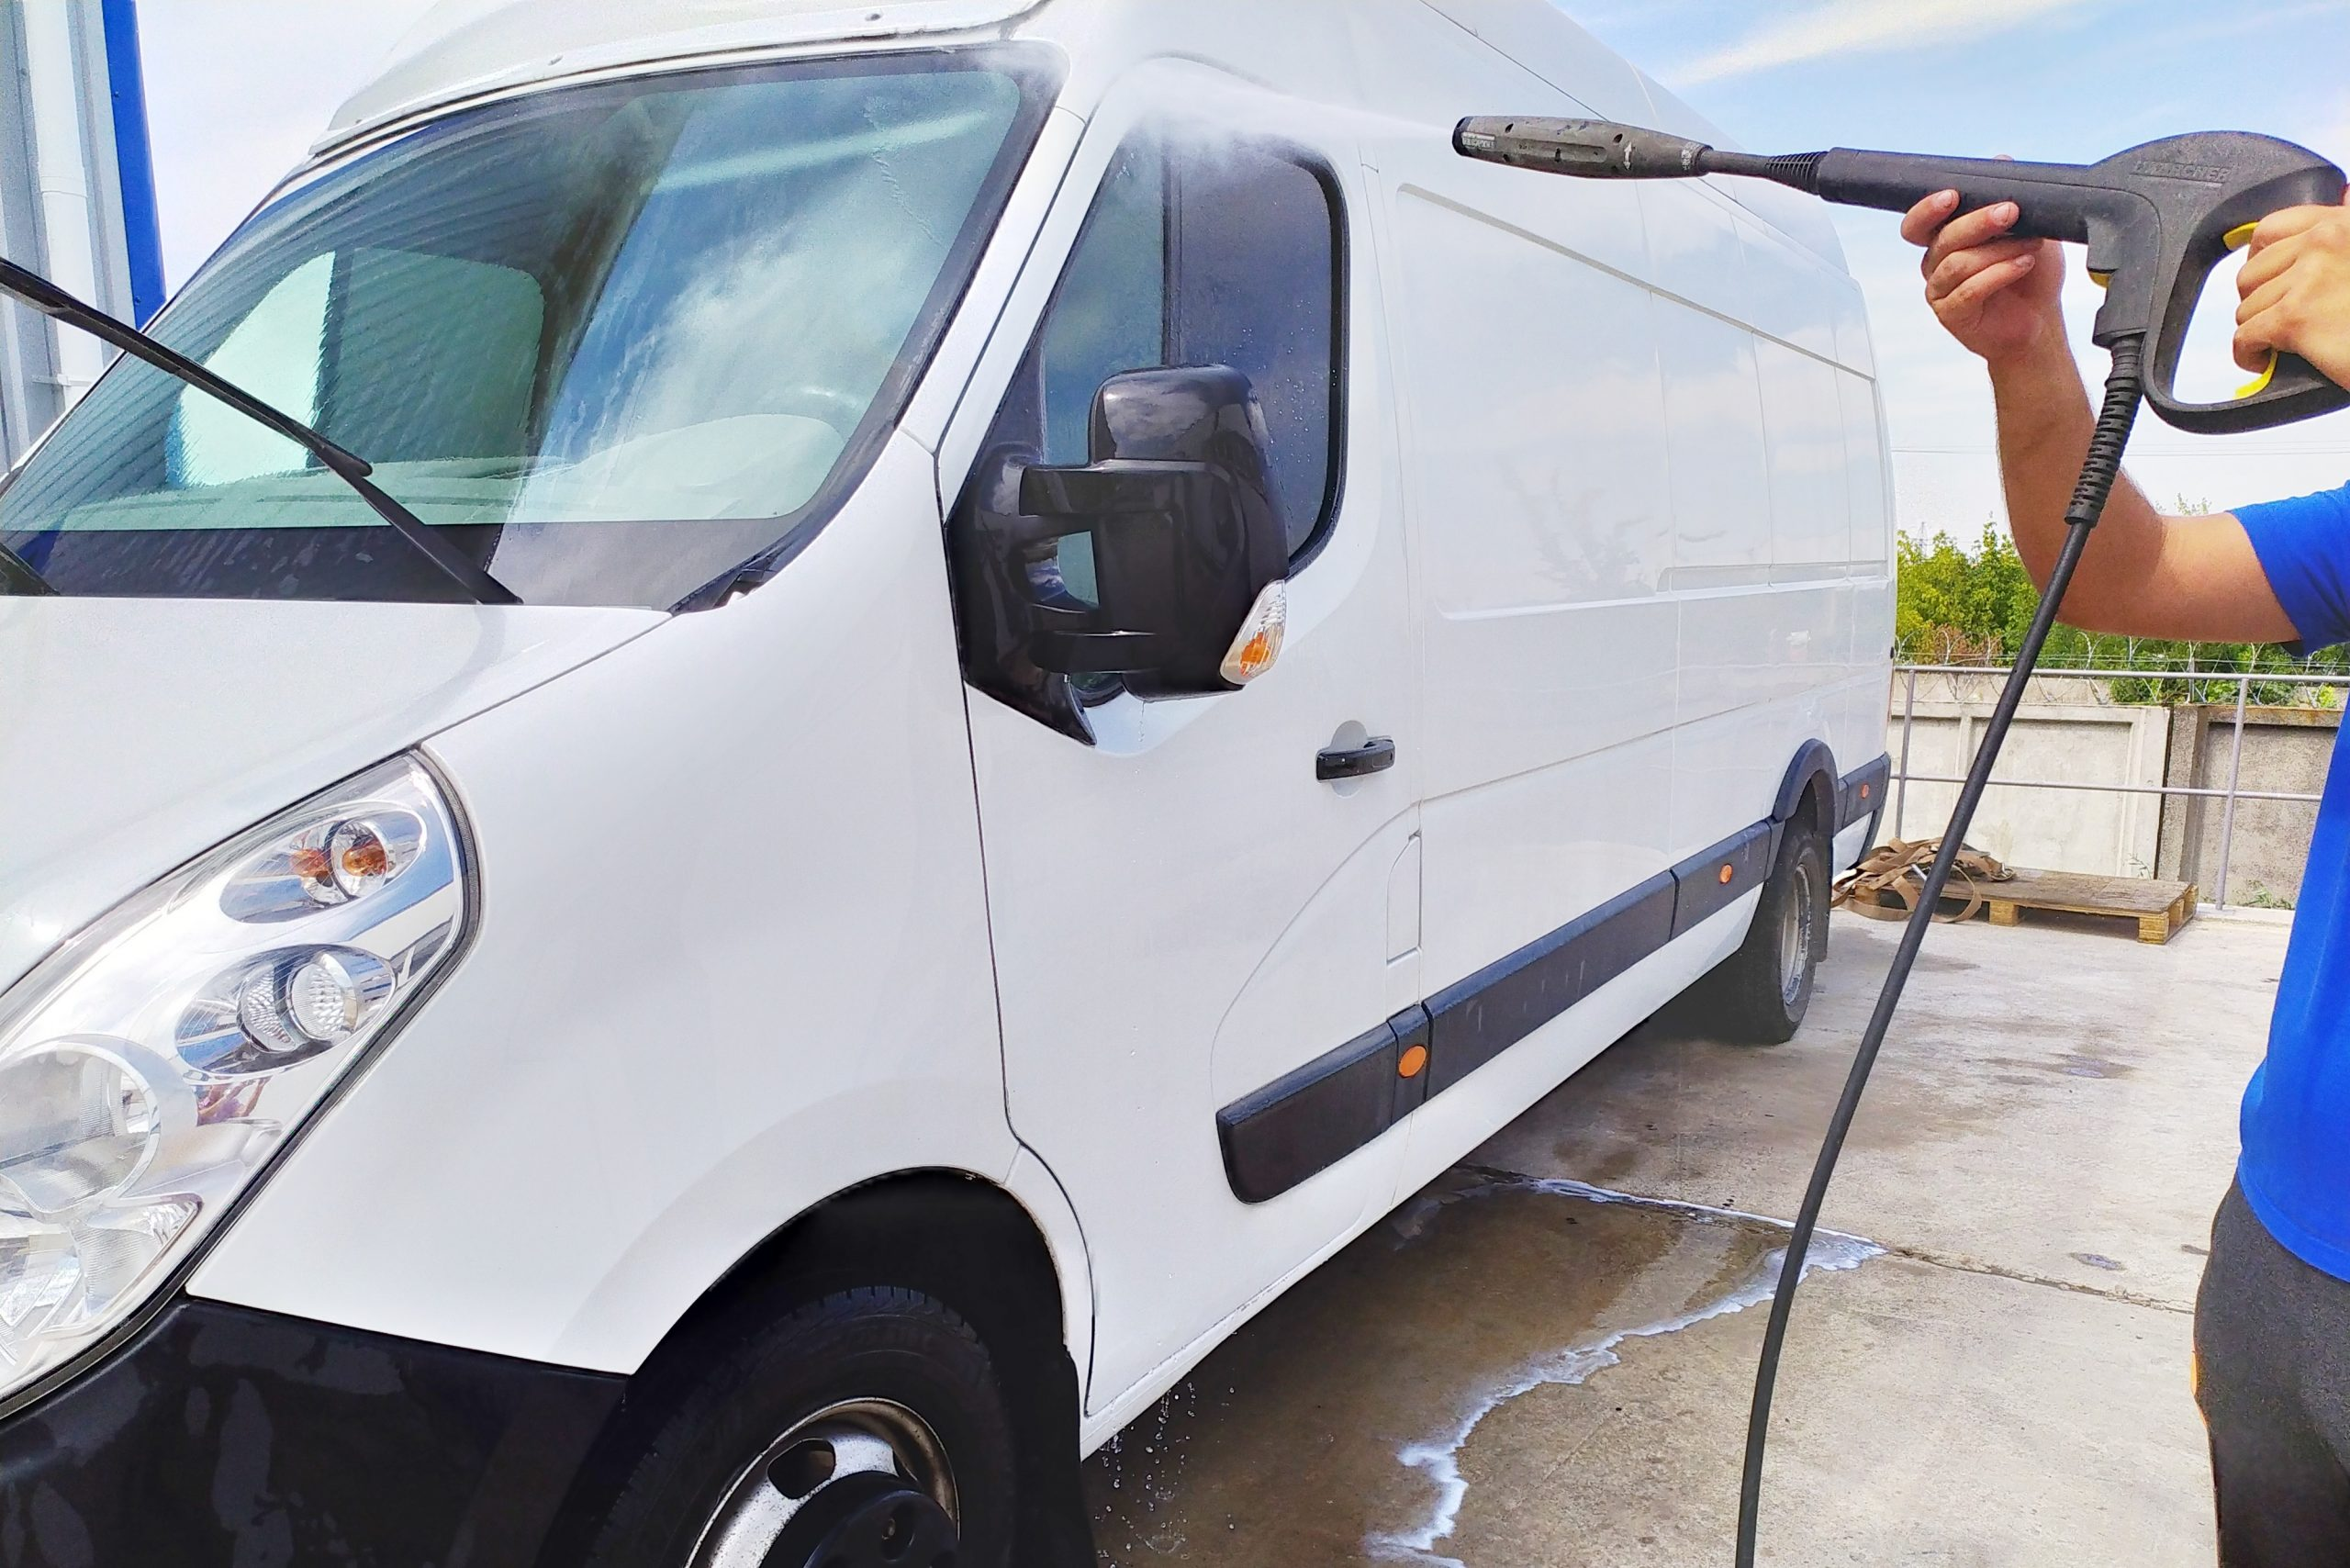 High pressure water jet cleaning. A male car wash's worker washing a white minibus using power sprayer.